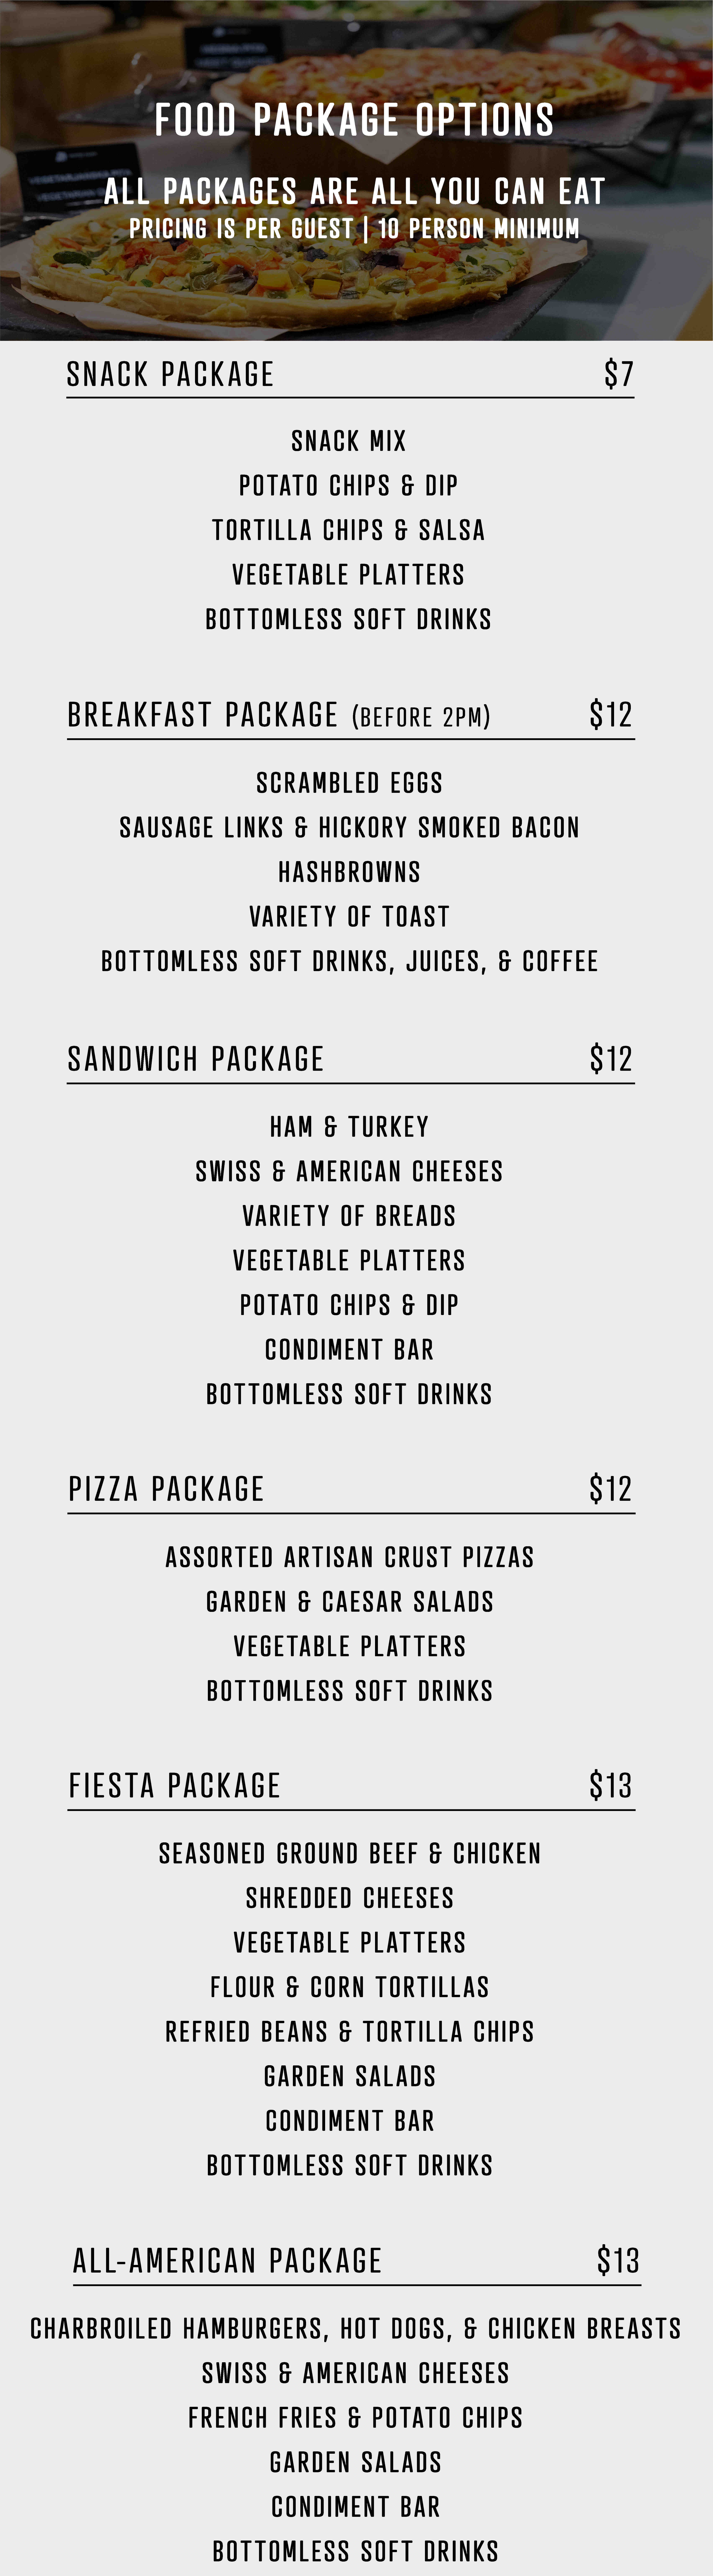 Adult and corporate food package information